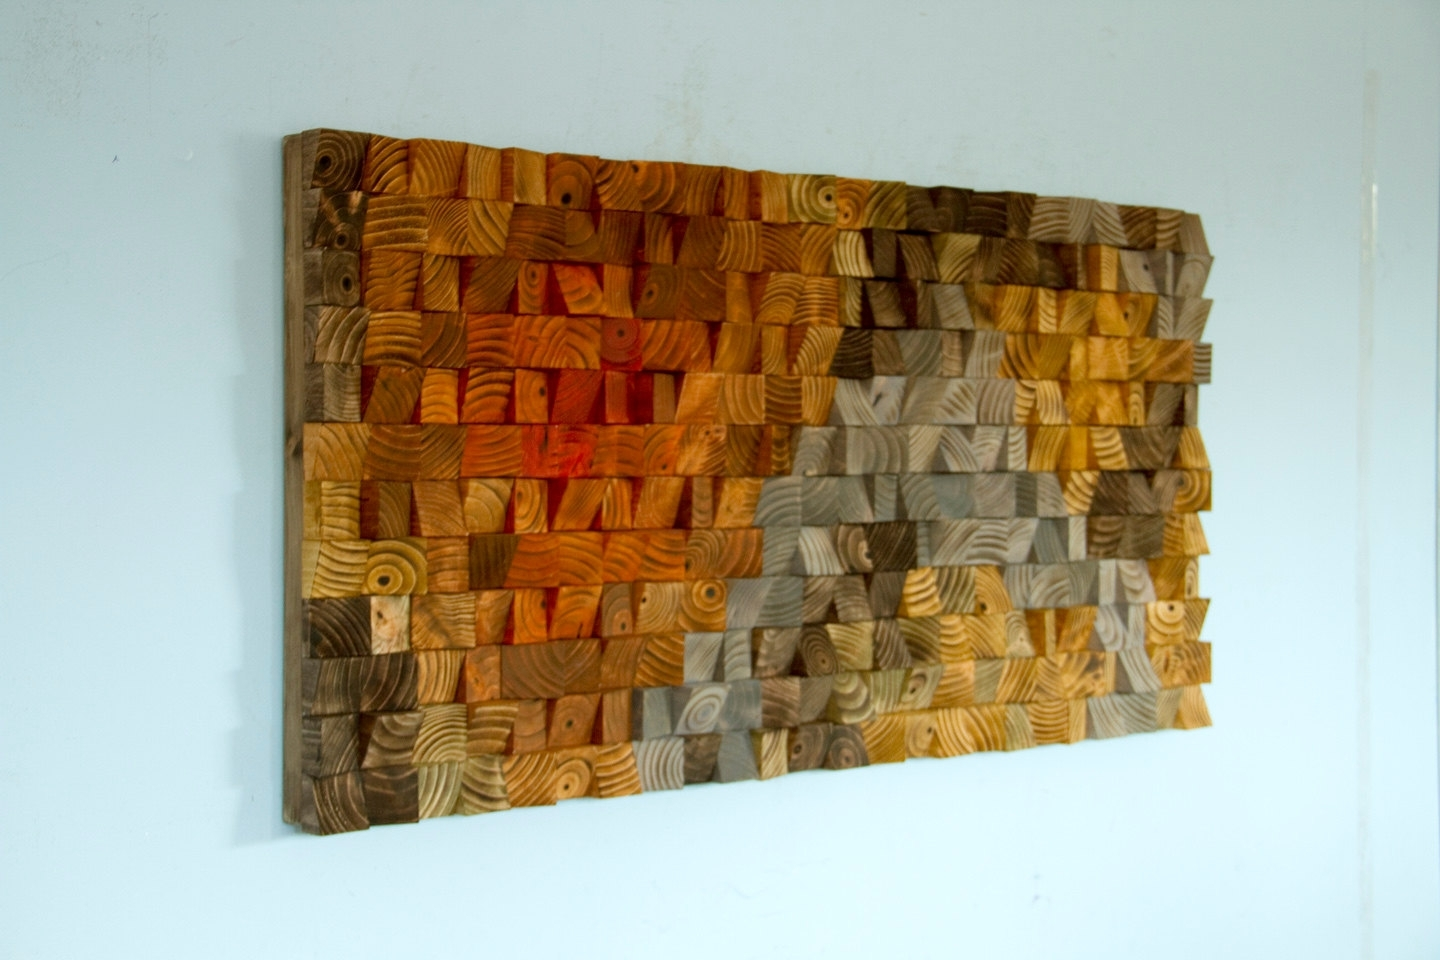 Rustic Wood Wall Art, Wood Wall Sculpture, Abstract Wood Art – Art Throughout Most Popular Sculpture Abstract Wall Art (View 7 of 20)